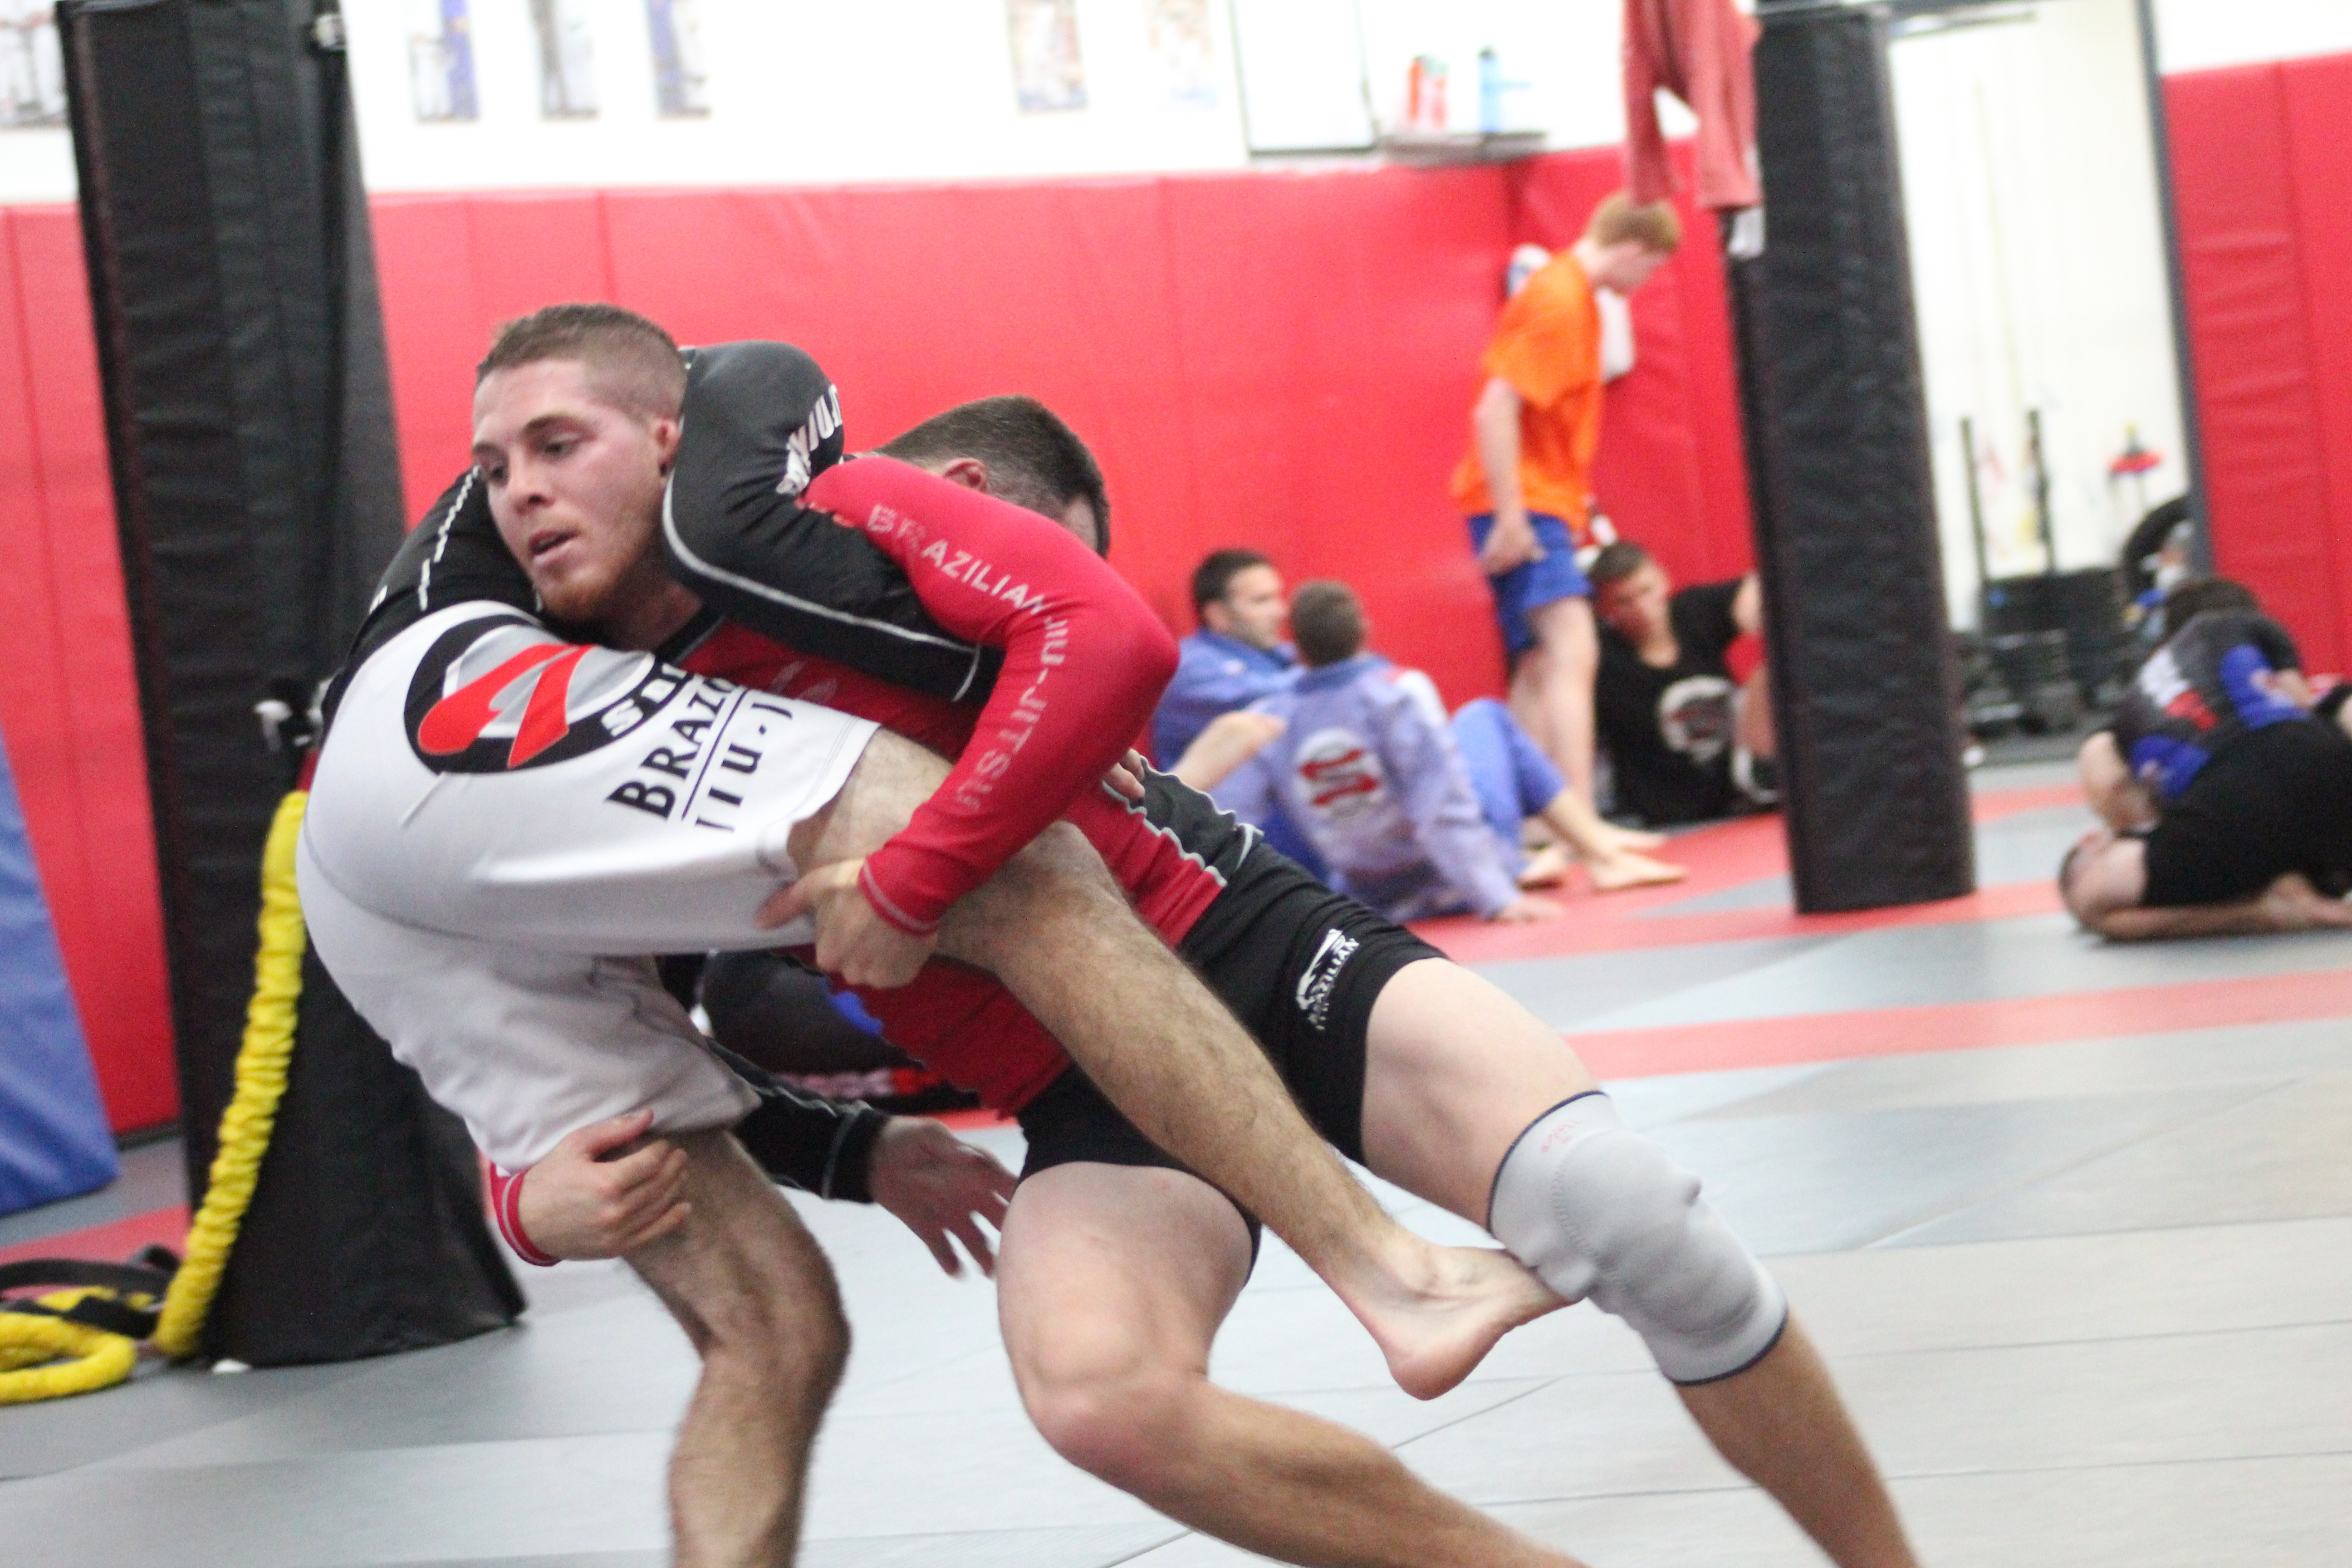 Which grappling martial art would be better to train, Judo